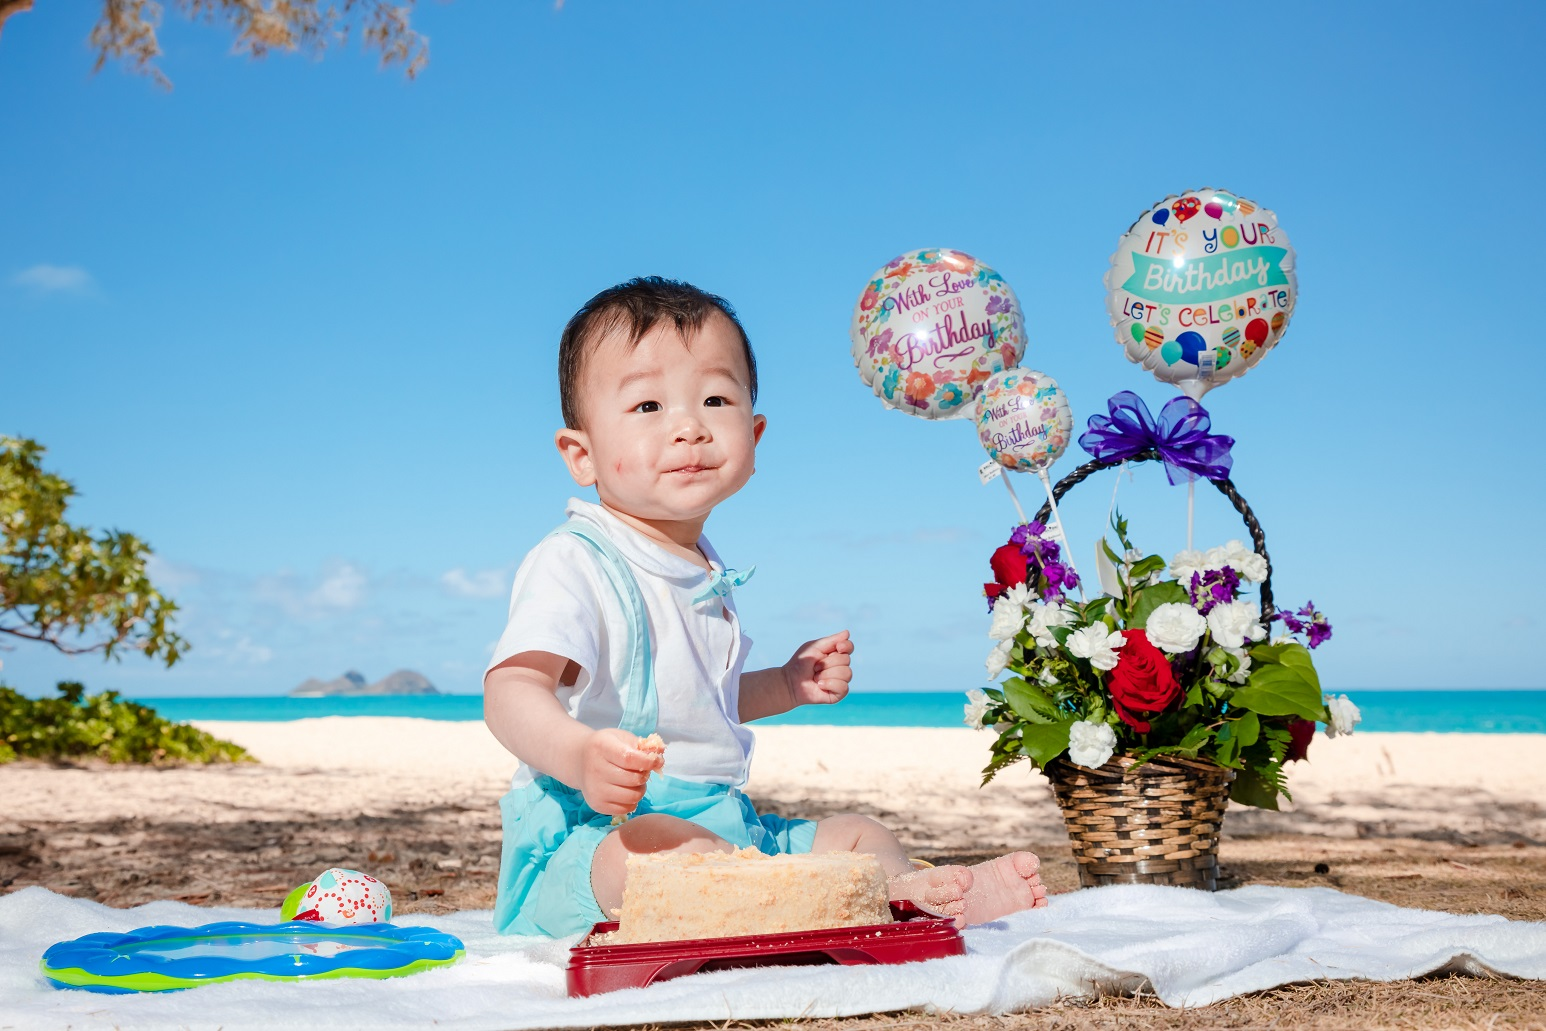 1st Birthday Parties! - Check out our blog post on our Keiki's 1st Birthday photography! (click image)